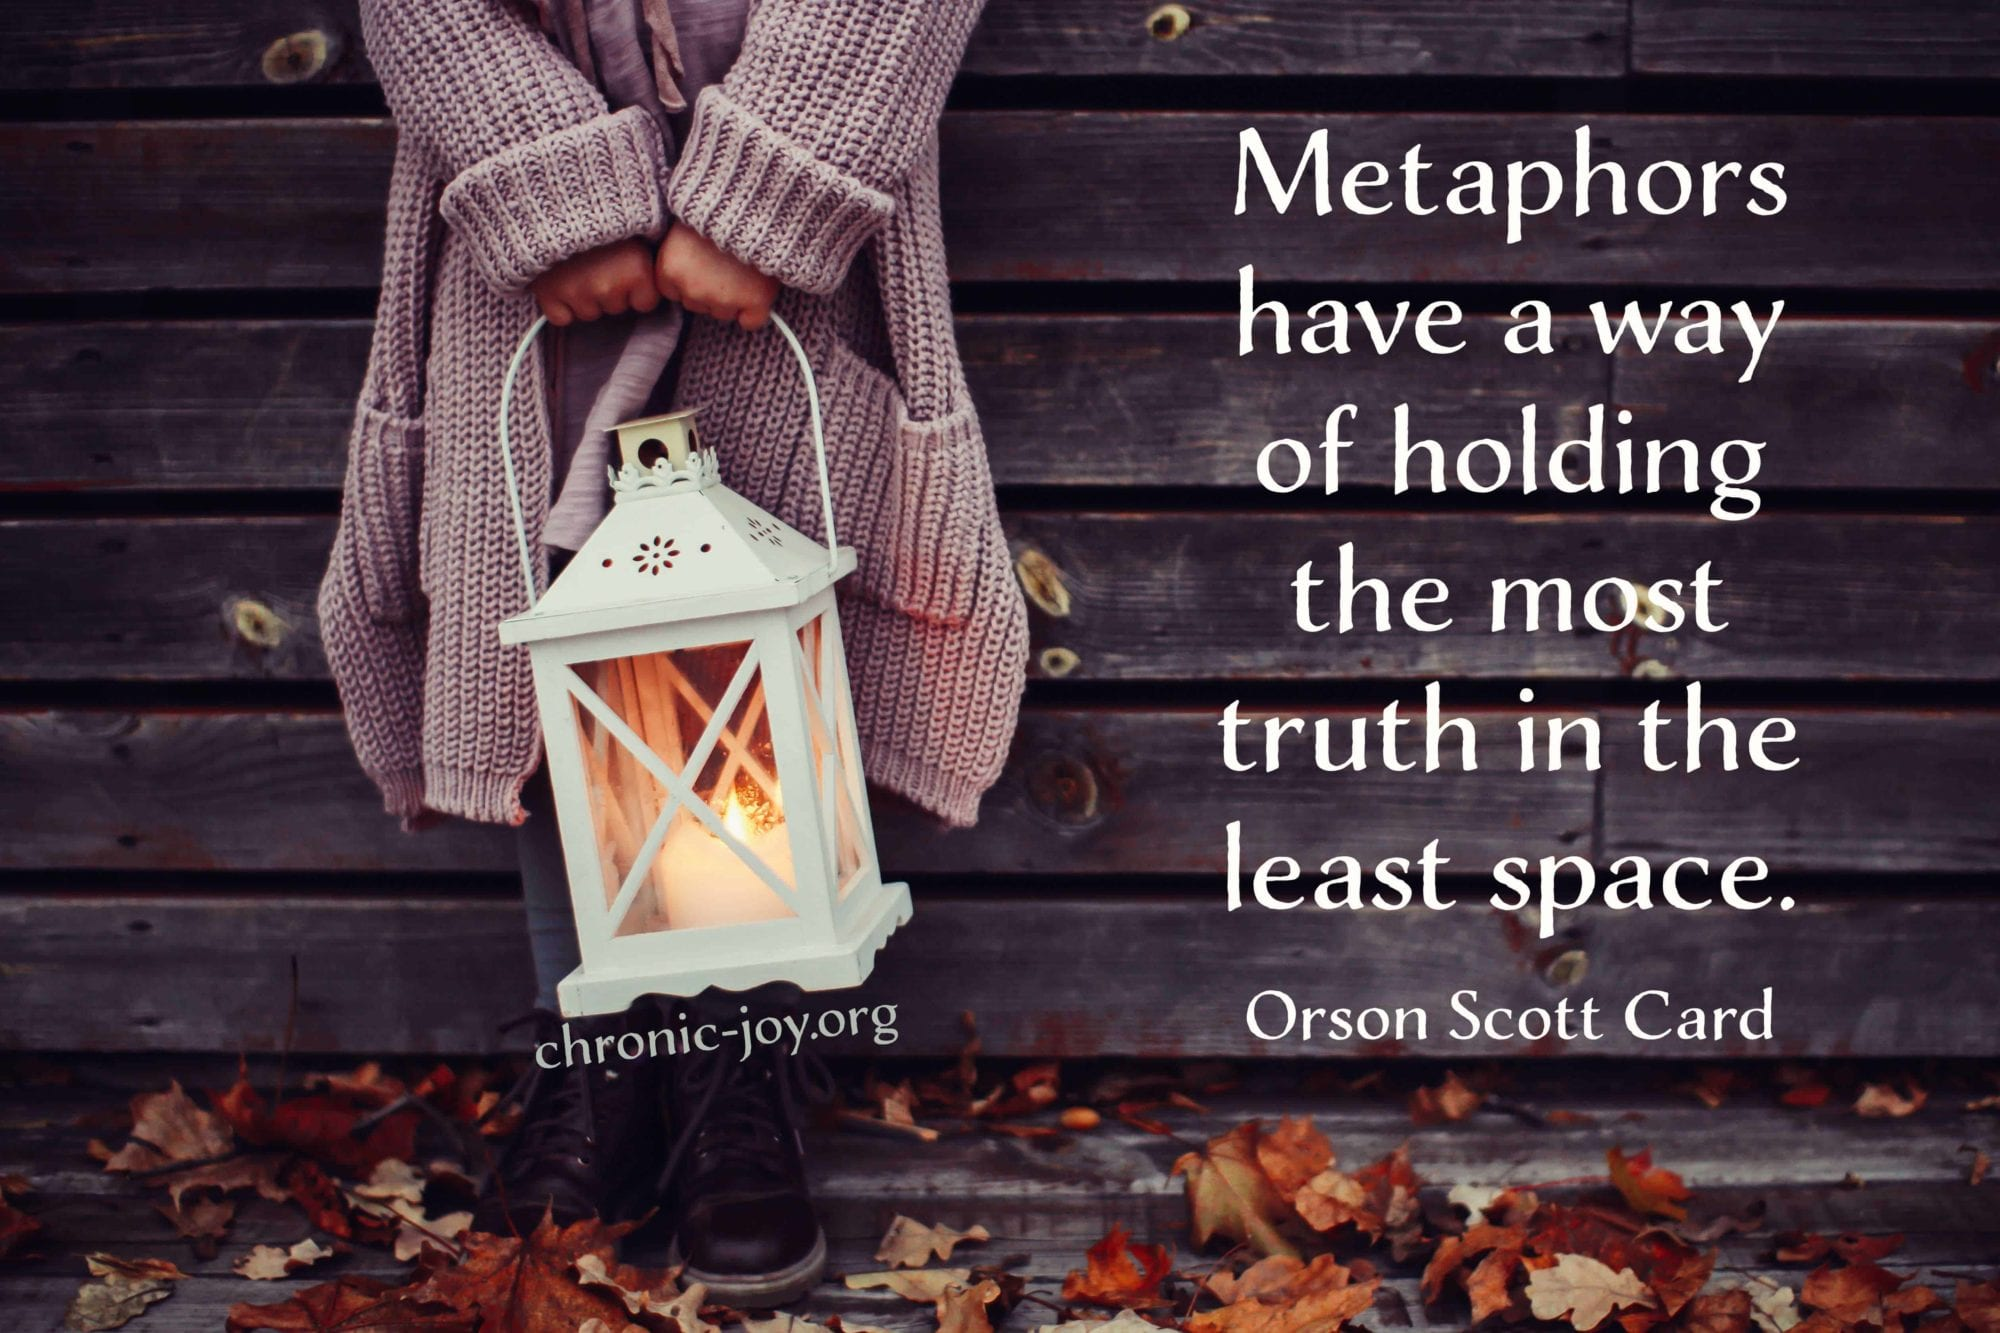 Metaphors have a way of holding the most truth in the least space.